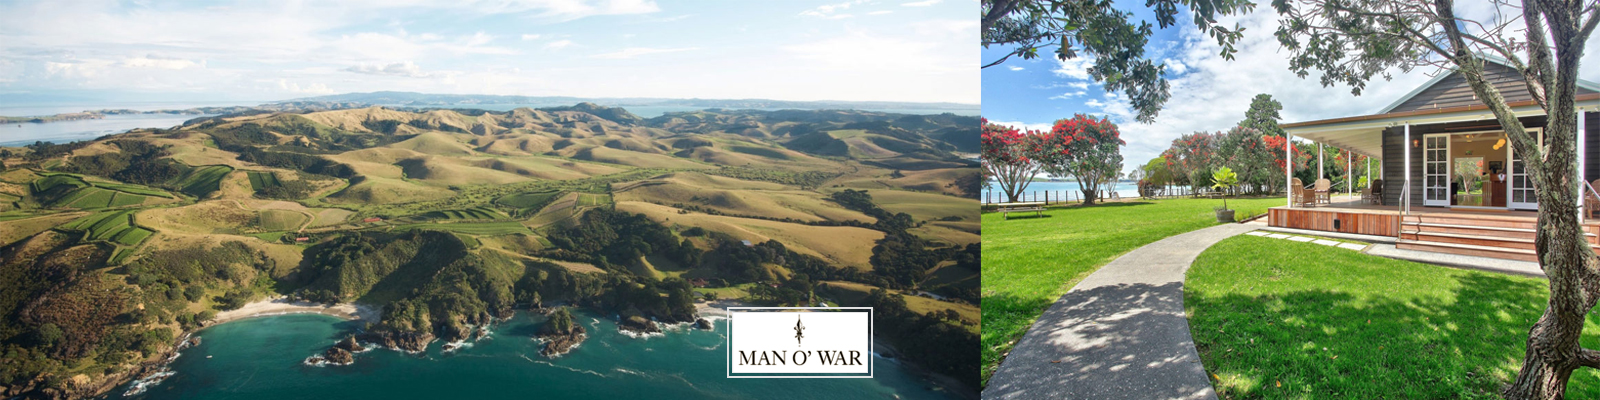 Man O'War Vineyards, Waiheke Island, New Zealand